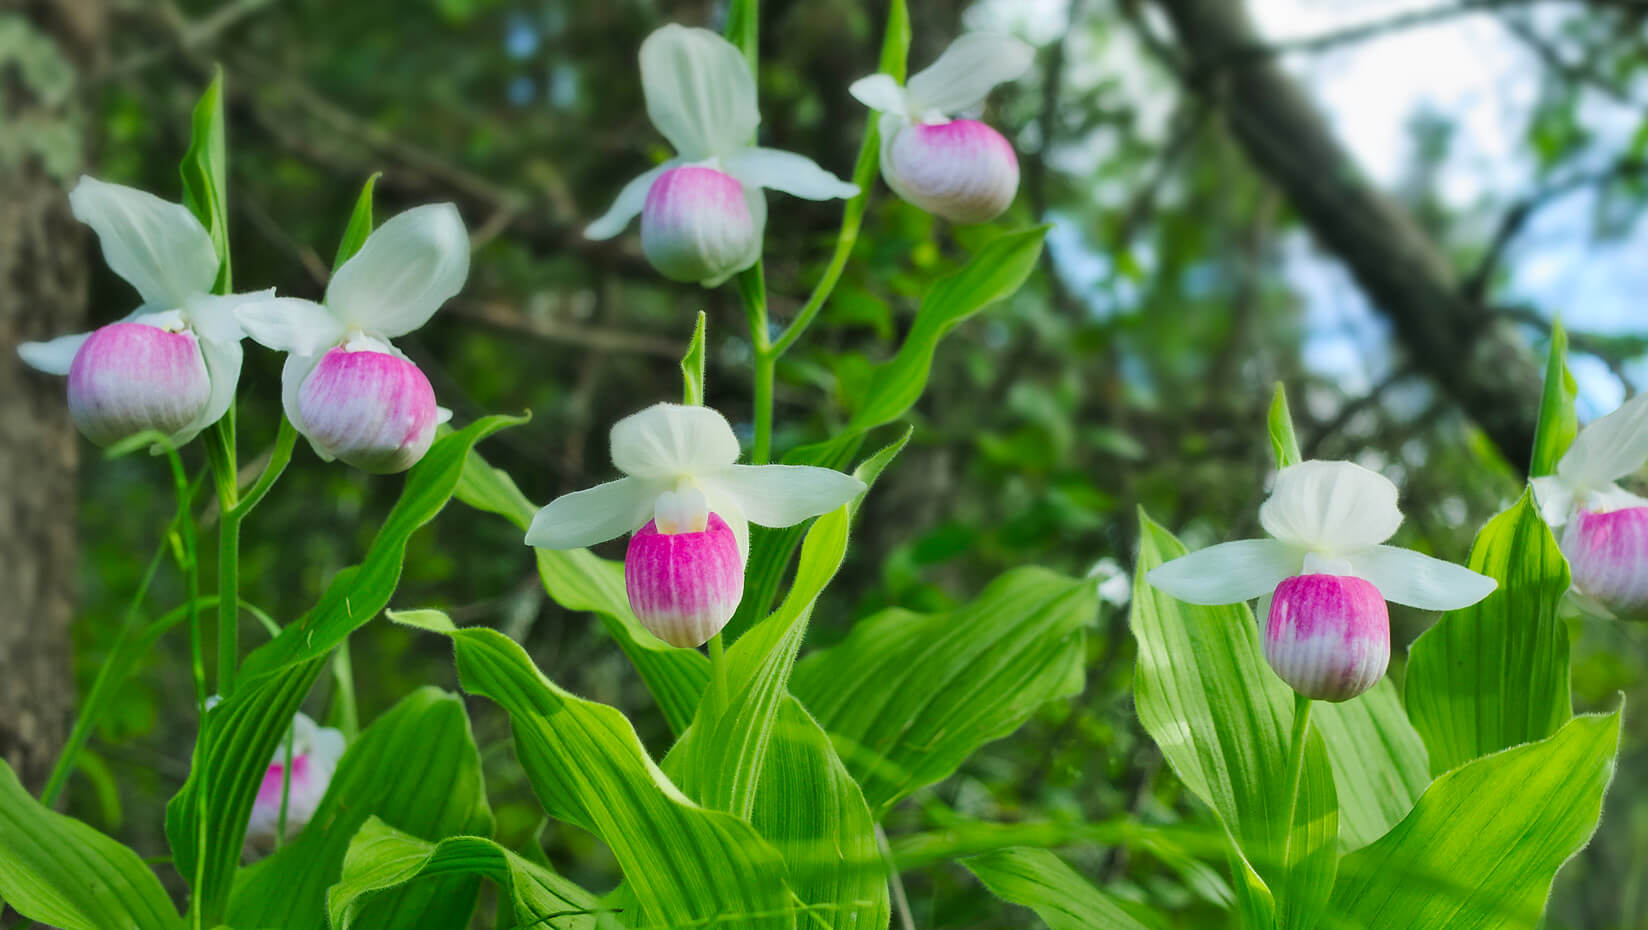 Pink and white lady slipper orchids